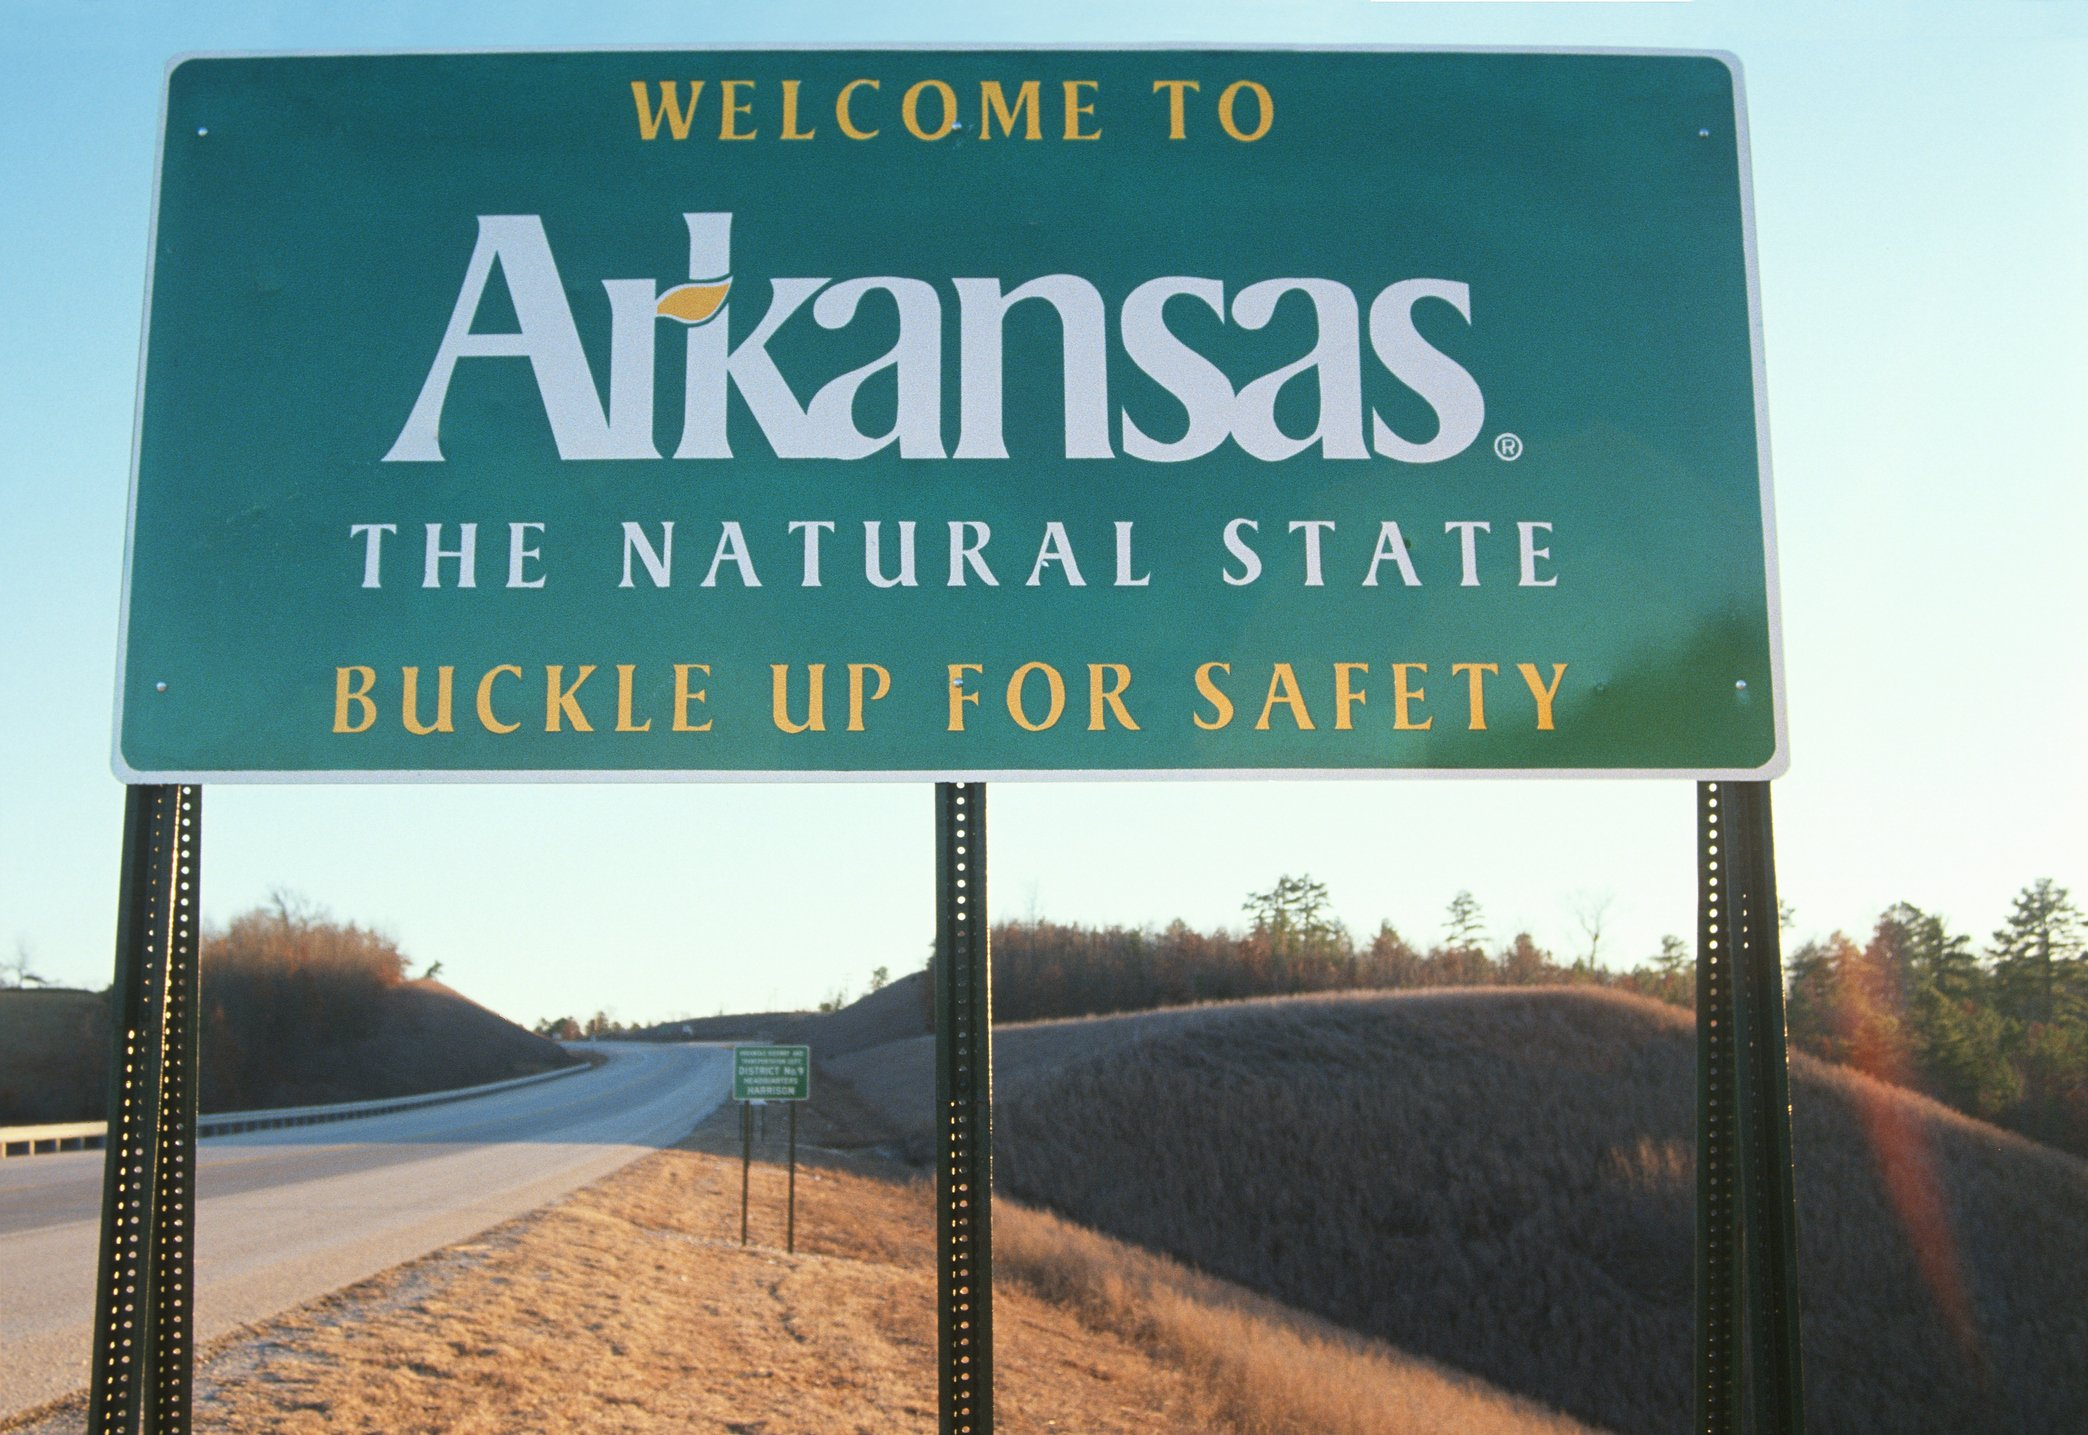 Slide 5 of 51: Arkansas is considered the natural state because the state contains six national park sites, two-and-a-half million acres of national forests, and 50 state parks. Take a look at the best state park in every state.